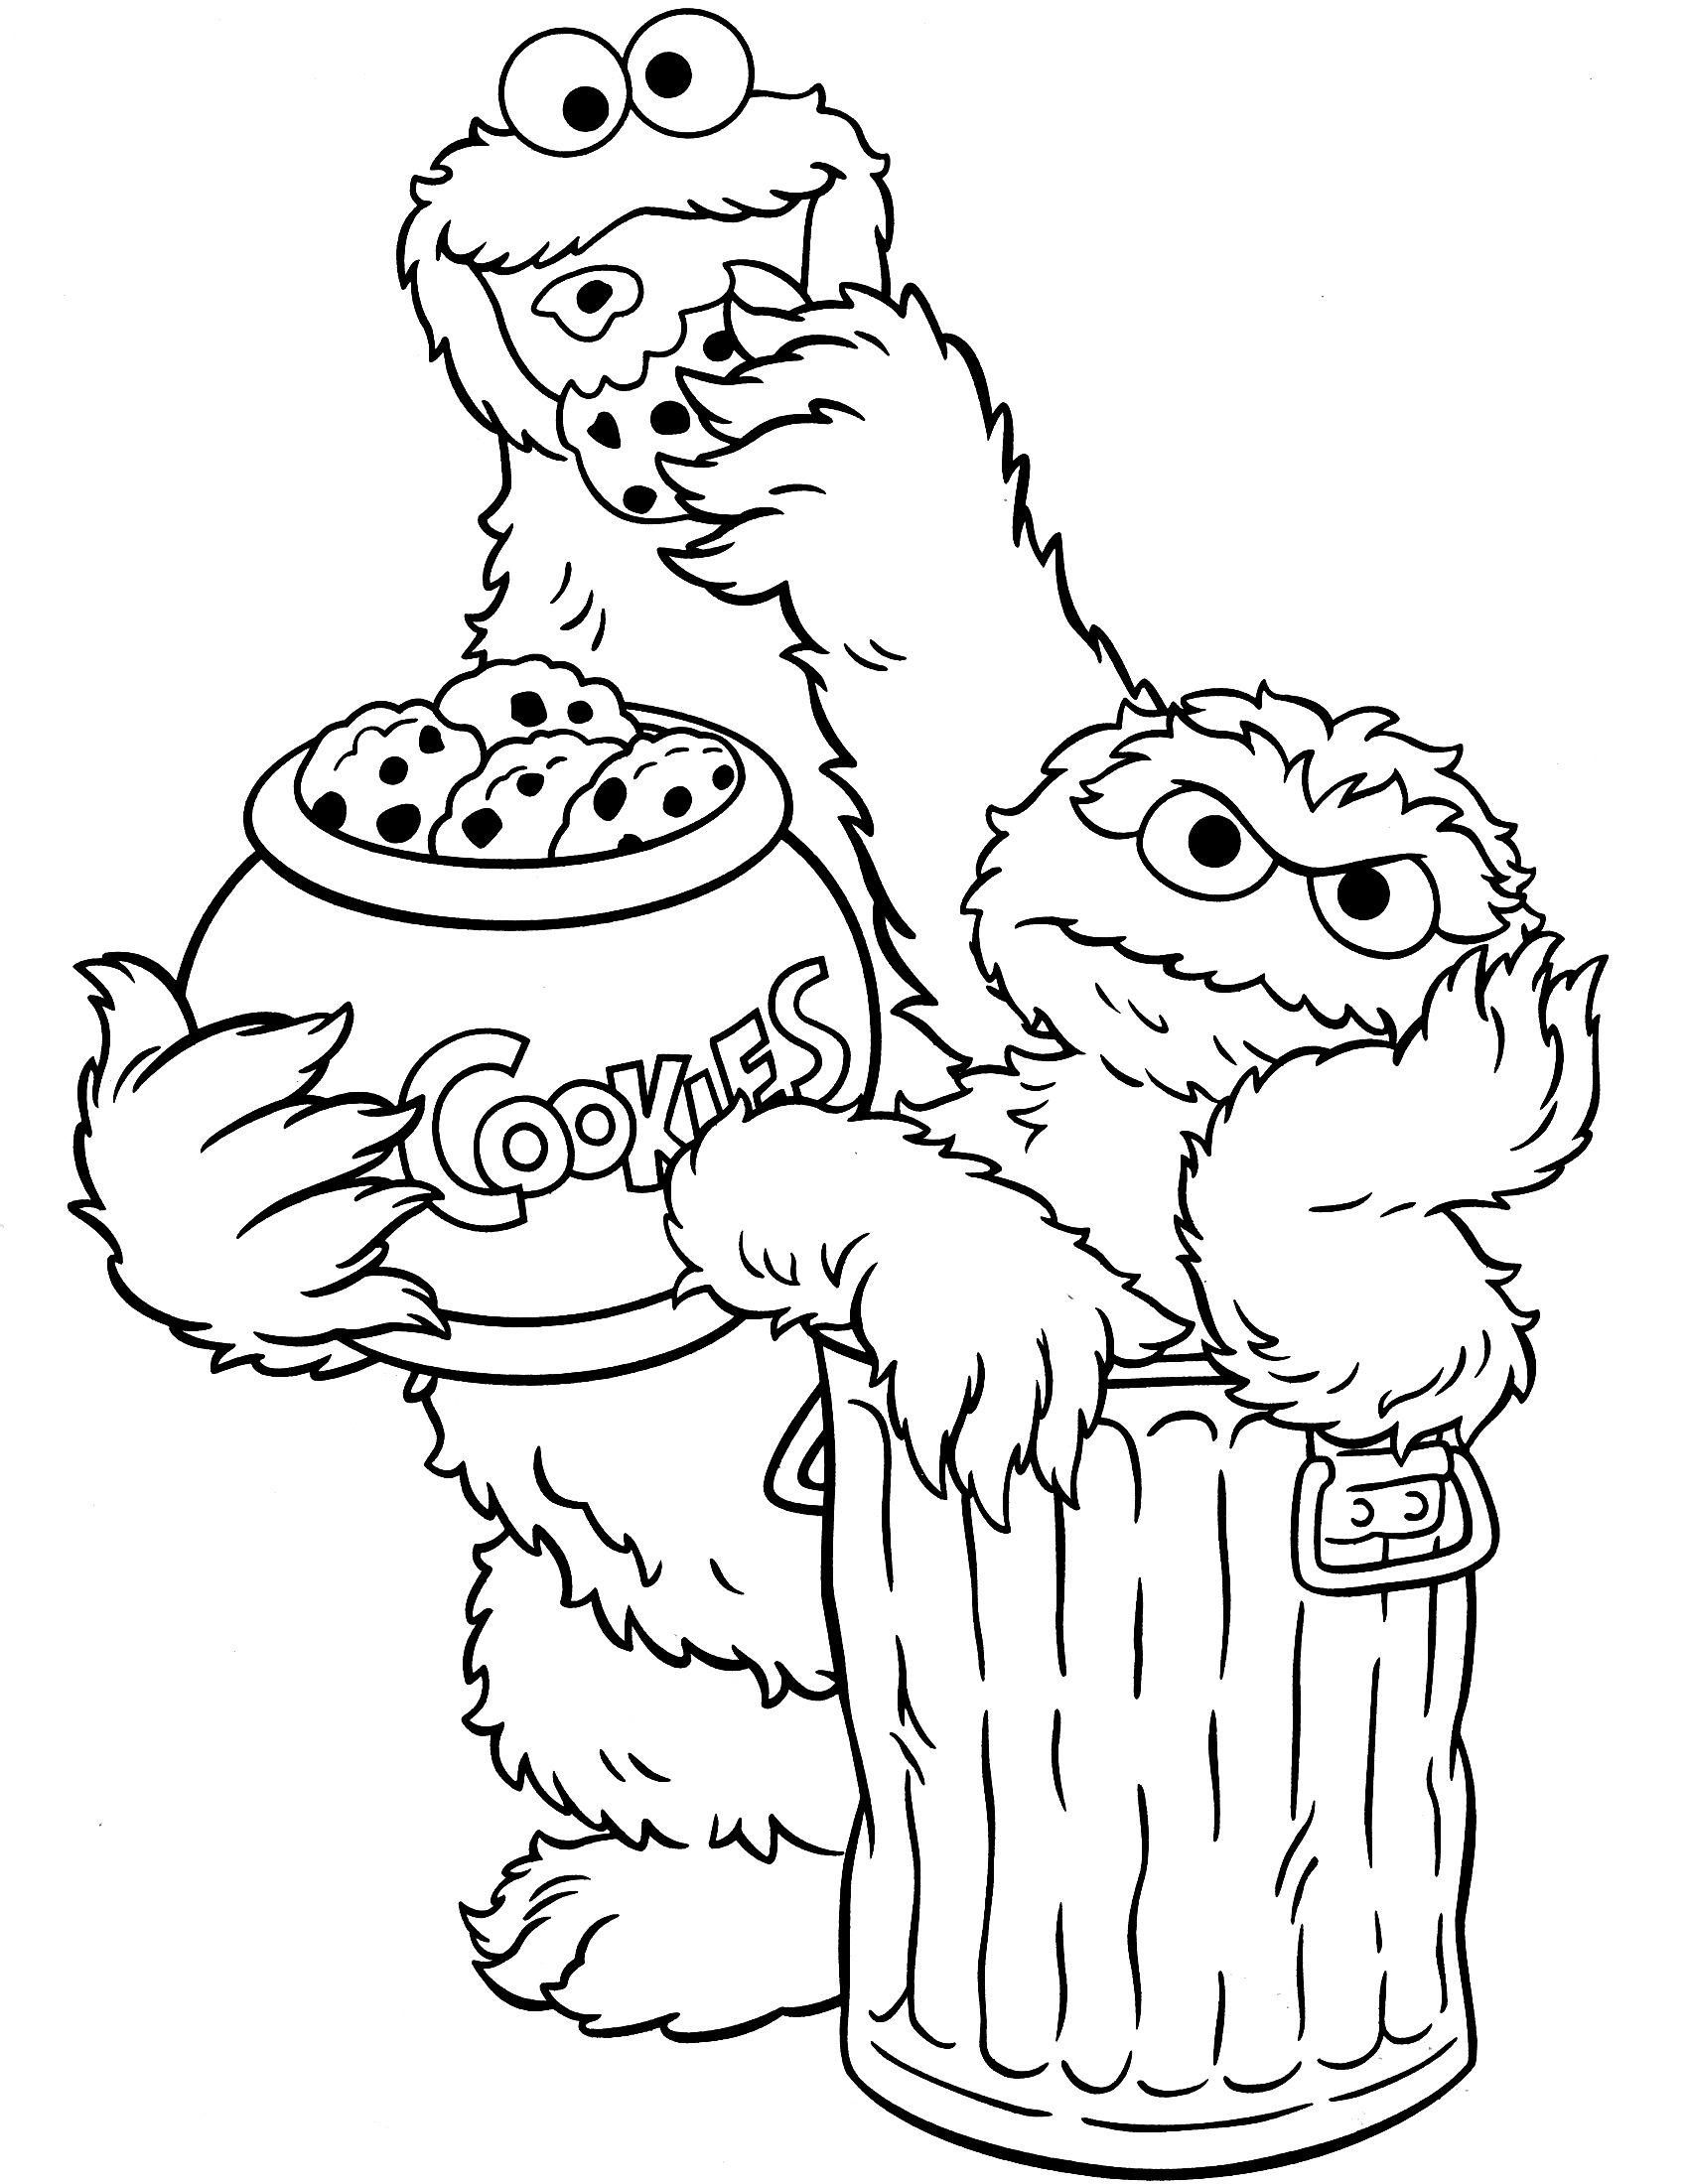 Free coloring pages elmo - Thanksgiving Coloring Pages Free Fish